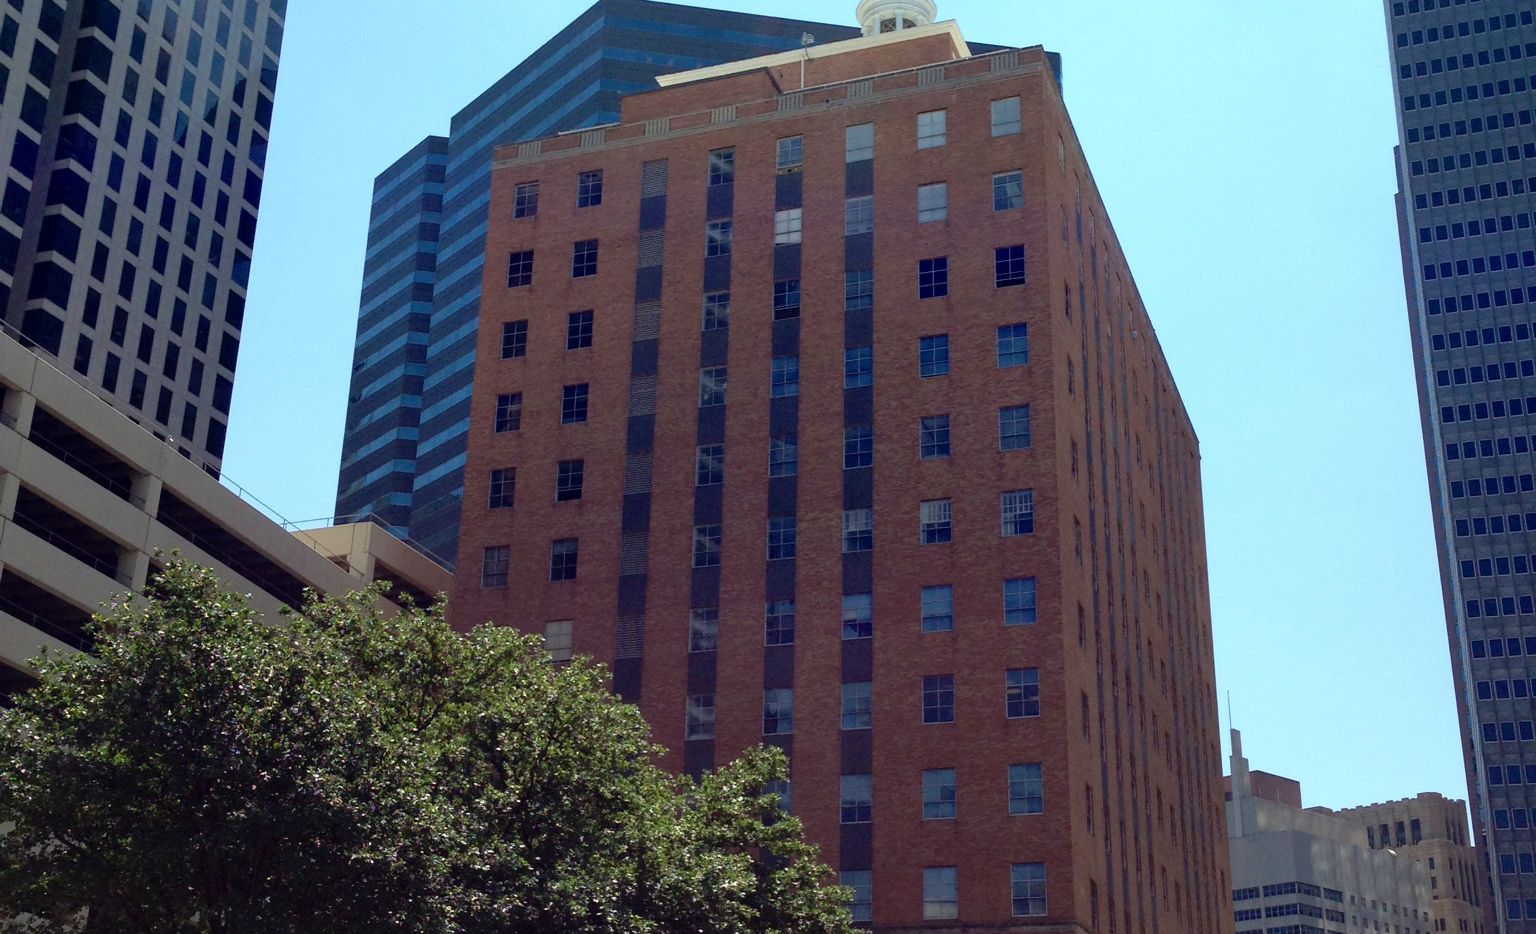 The Hartford Building opened in 1959 on Harwood Street.